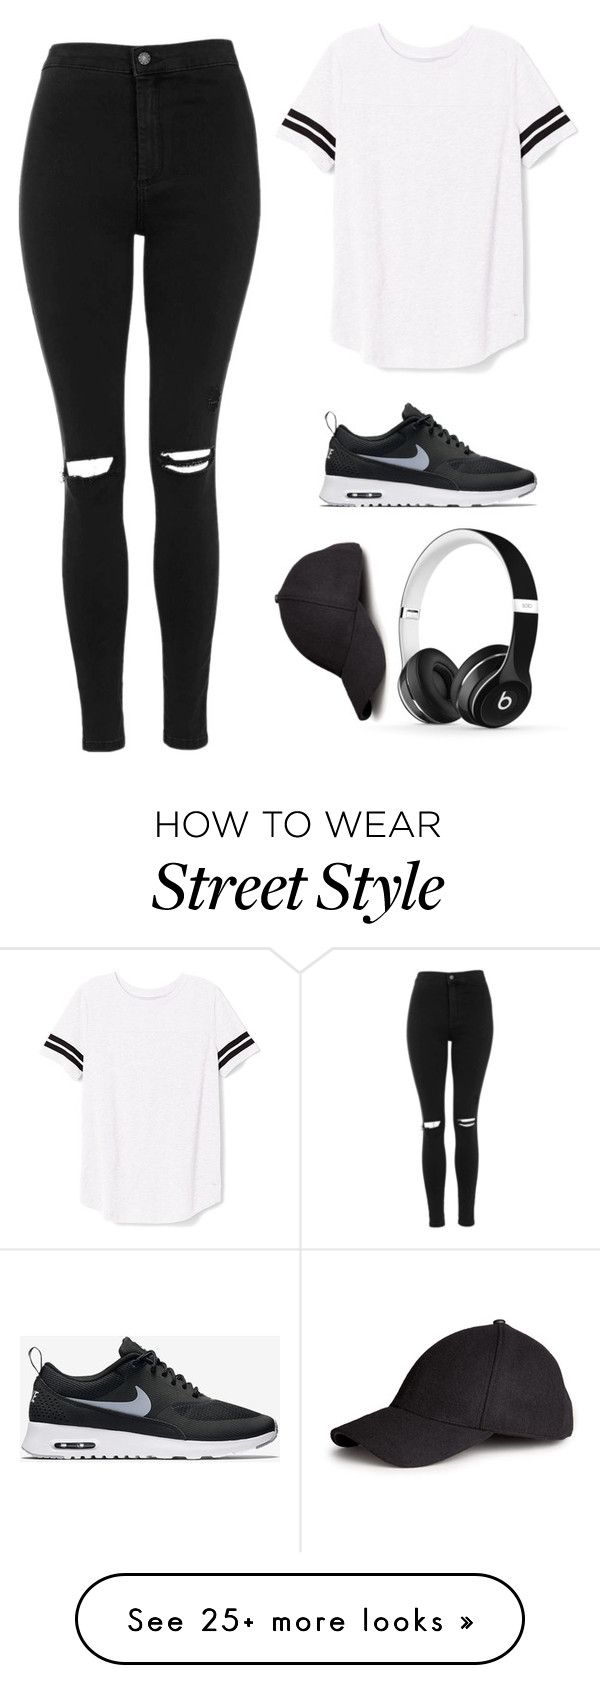 """Street style!"" by amanda2423 on Polyvore featuring Victoria's Secret PINK, Topshop, NIKE, Beats by Dr. Dre, H&M, black, cap, nike and headphones"